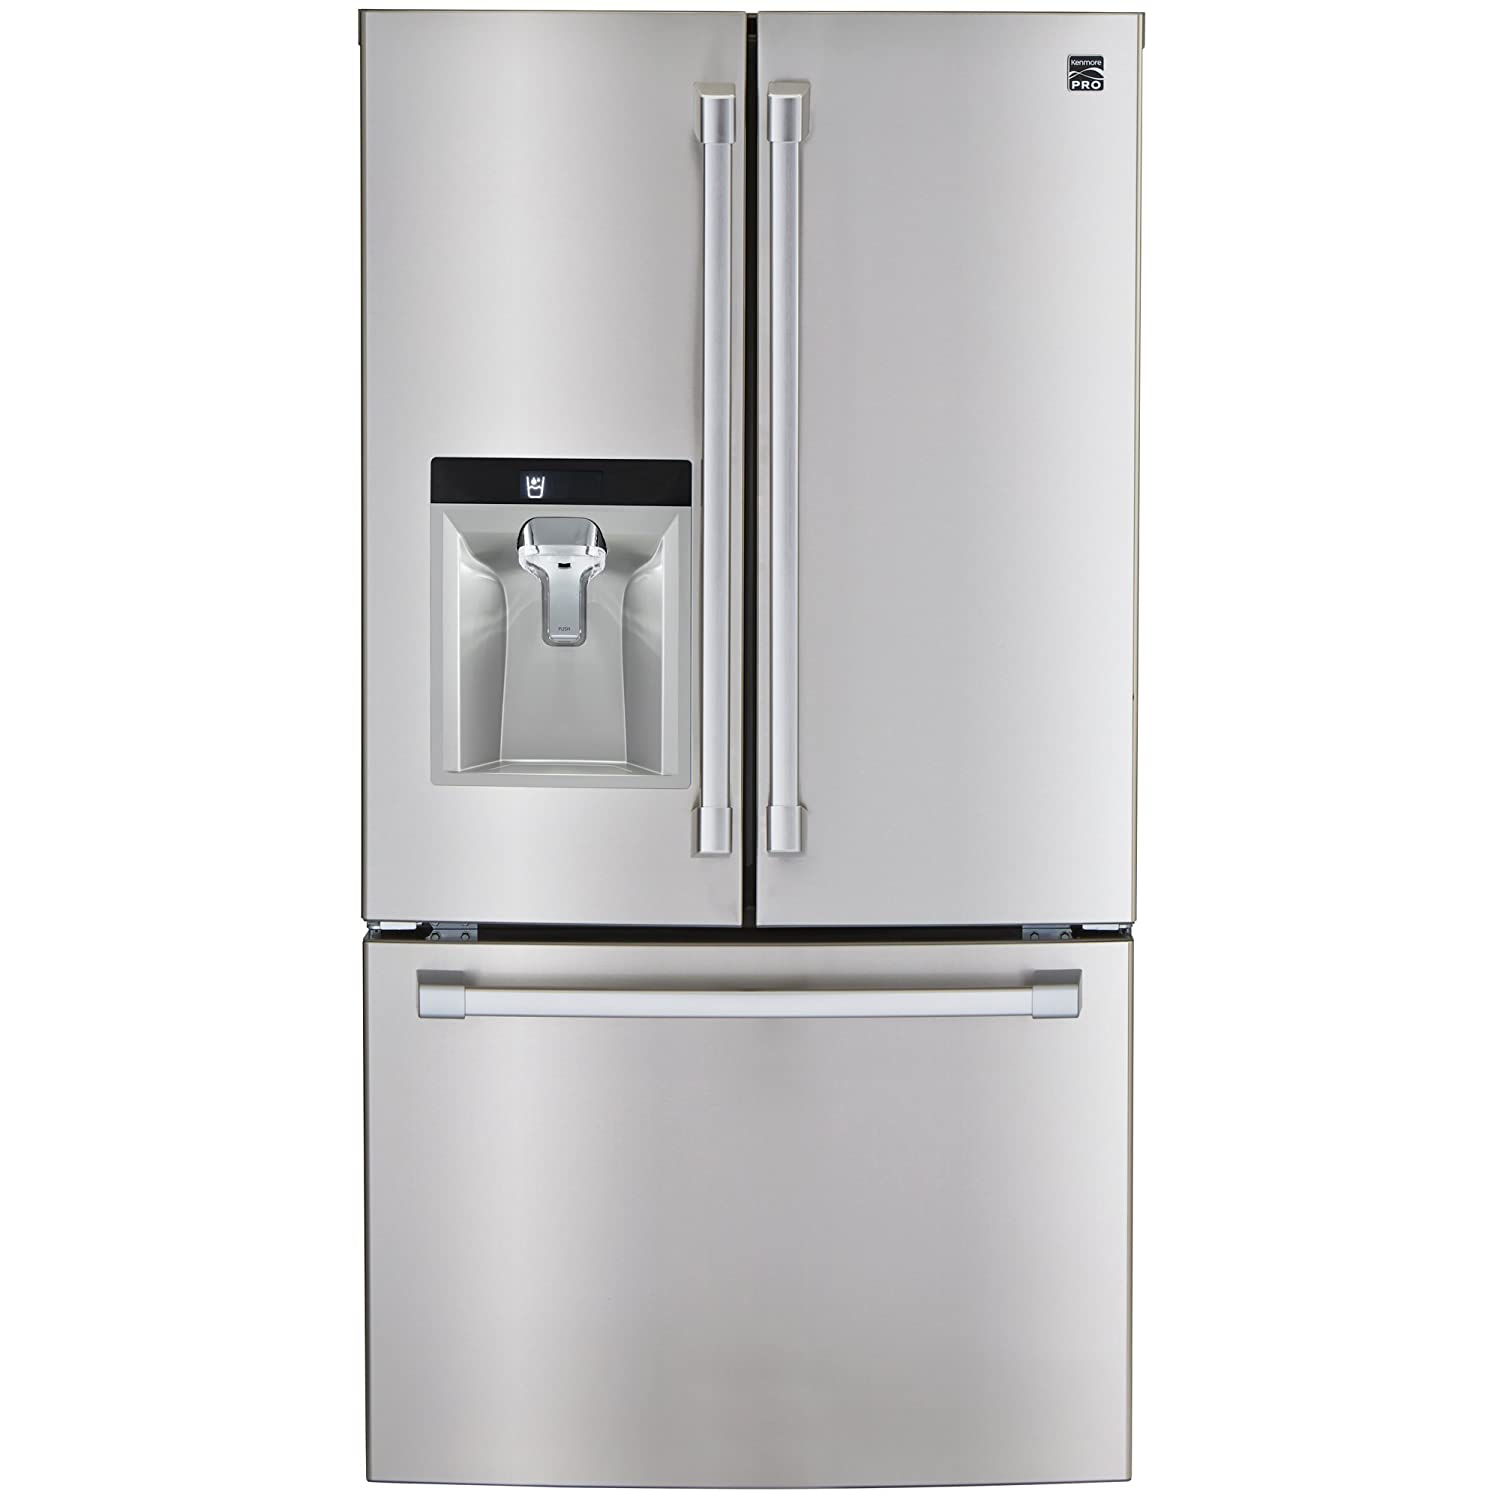 Amazon.com: Kenmore PRO 79983 29.8 cu. ft. French Door Bottom Freezer  Refrigerator in Stainless Steel -Works with Alexa, includes delivery and  hookup: ...